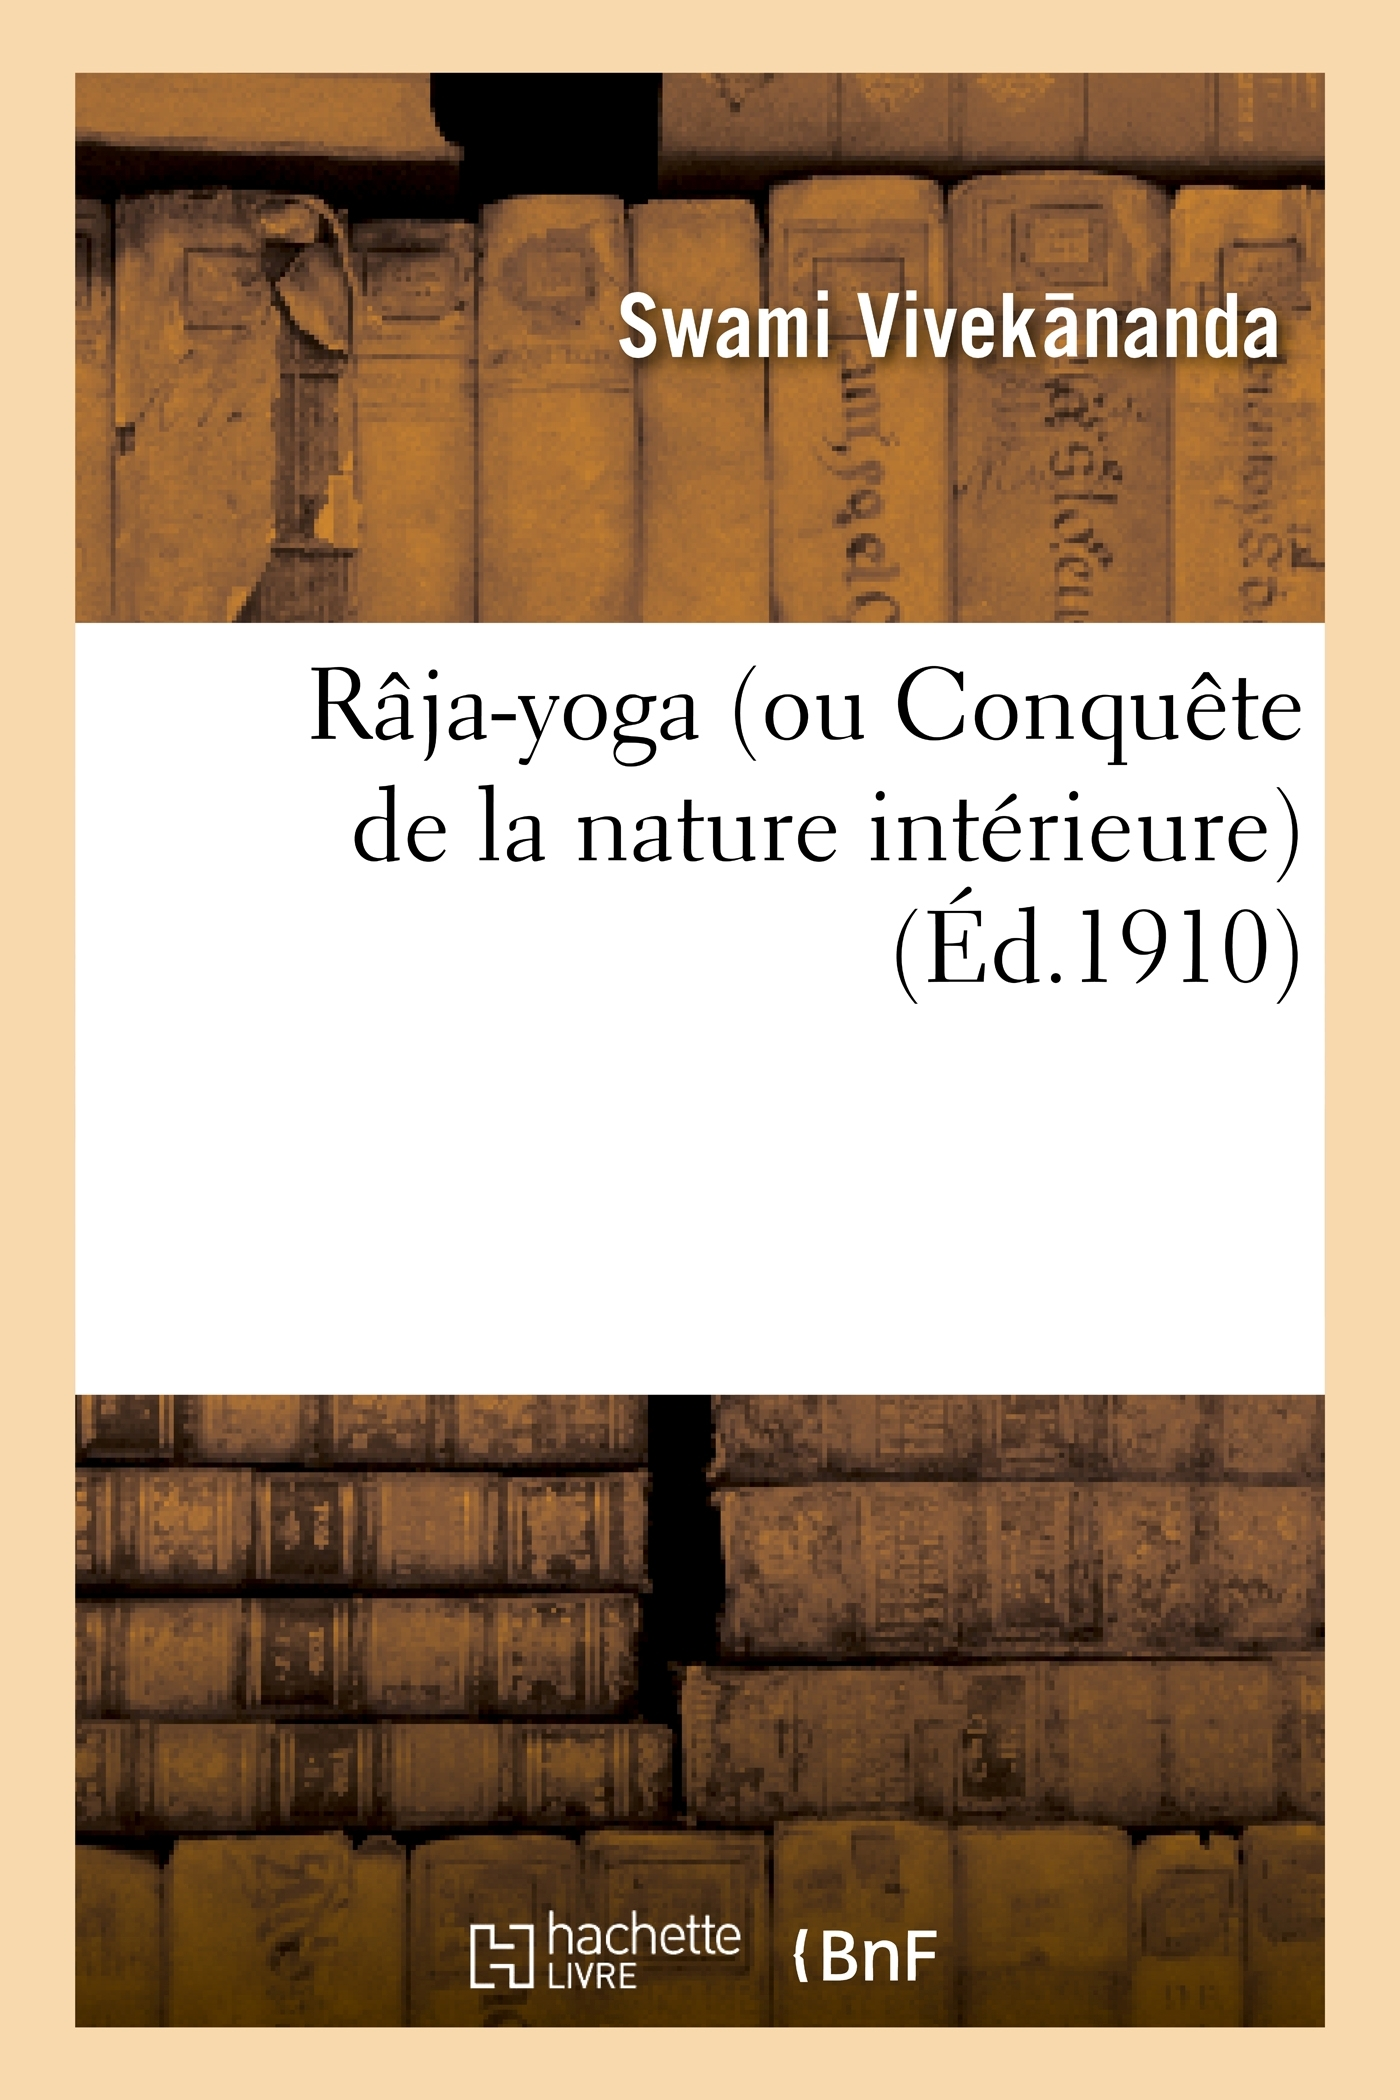 RAJA-YOGA (OU CONQUETE DE LA NATURE INTERIEURE) CONFERENCES FAITES EN 1895-1896 A NEW YORK